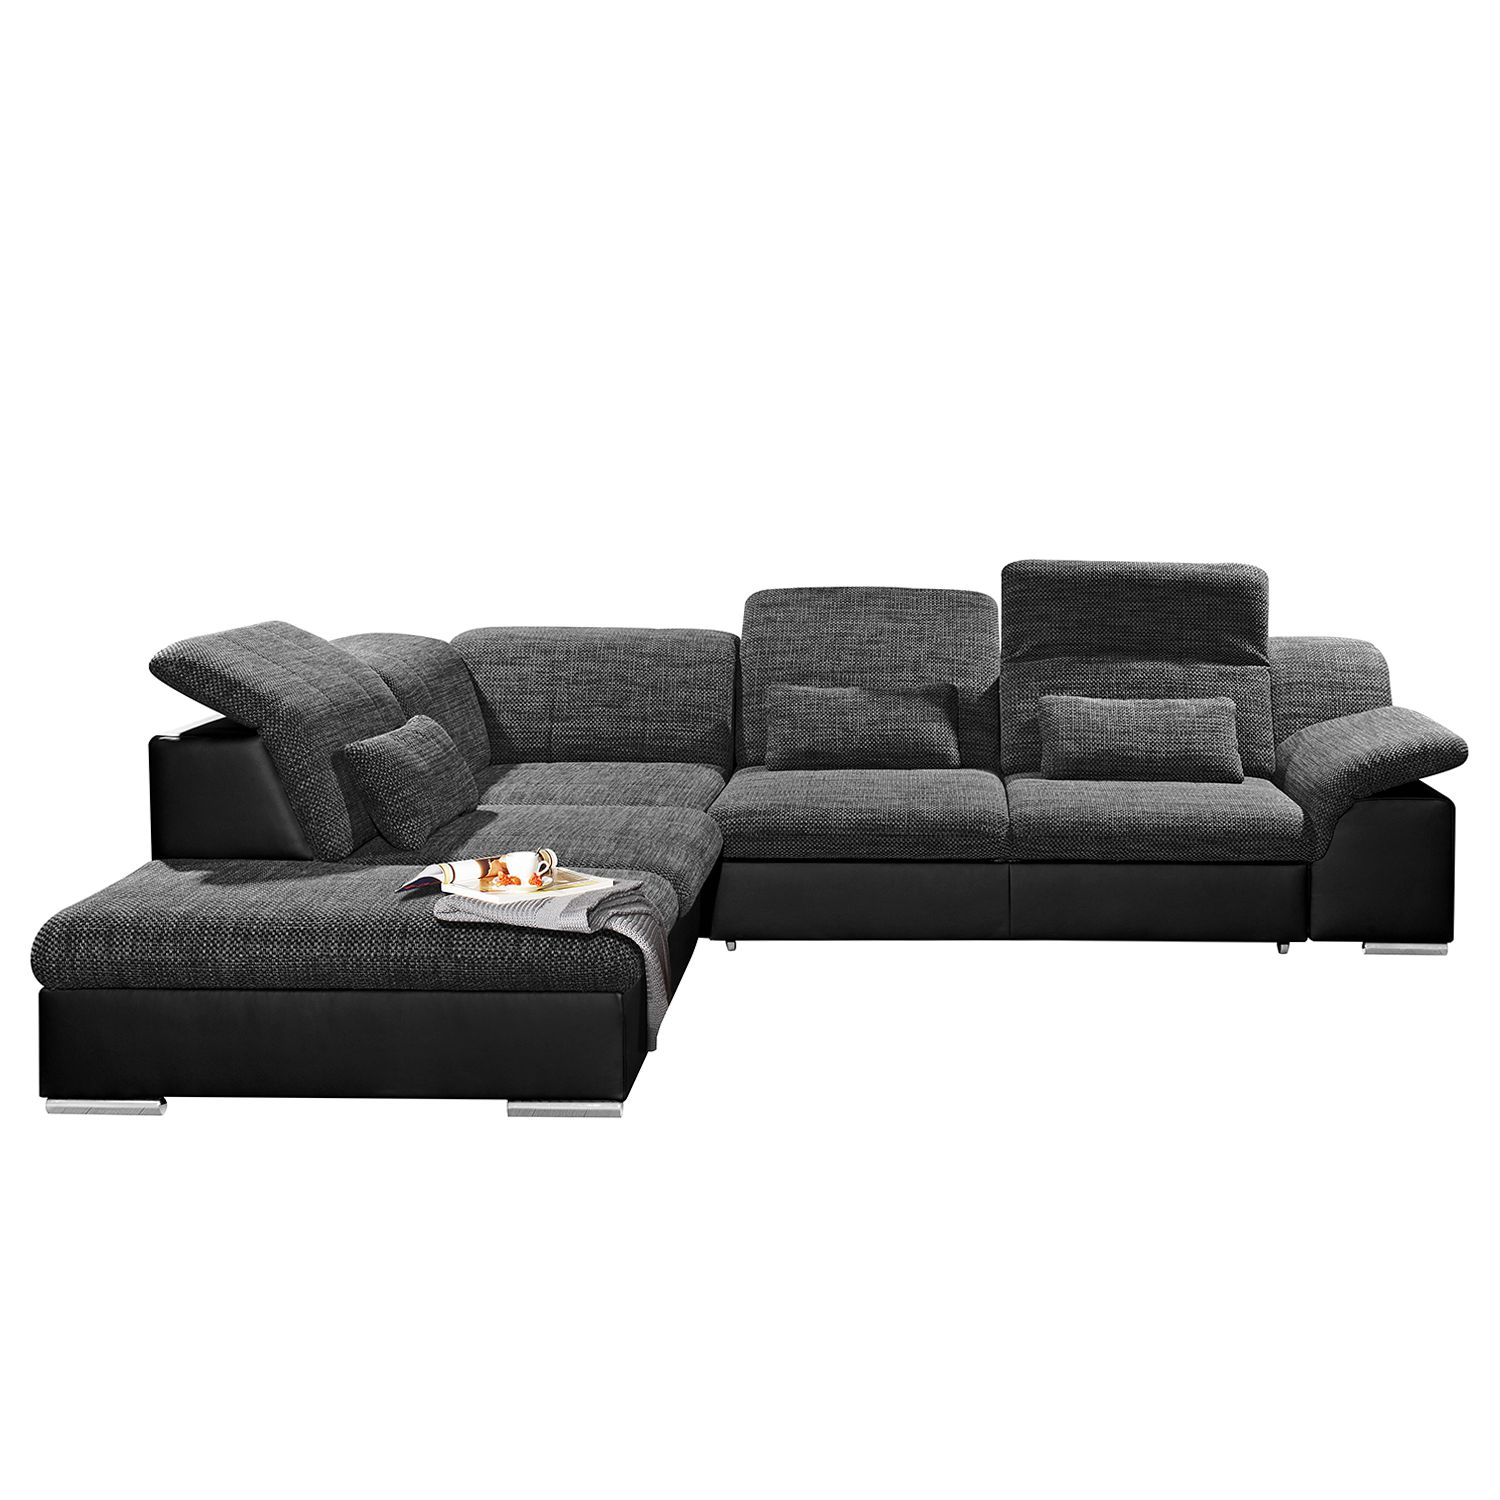 ecksofa mikano preisvergleich. Black Bedroom Furniture Sets. Home Design Ideas